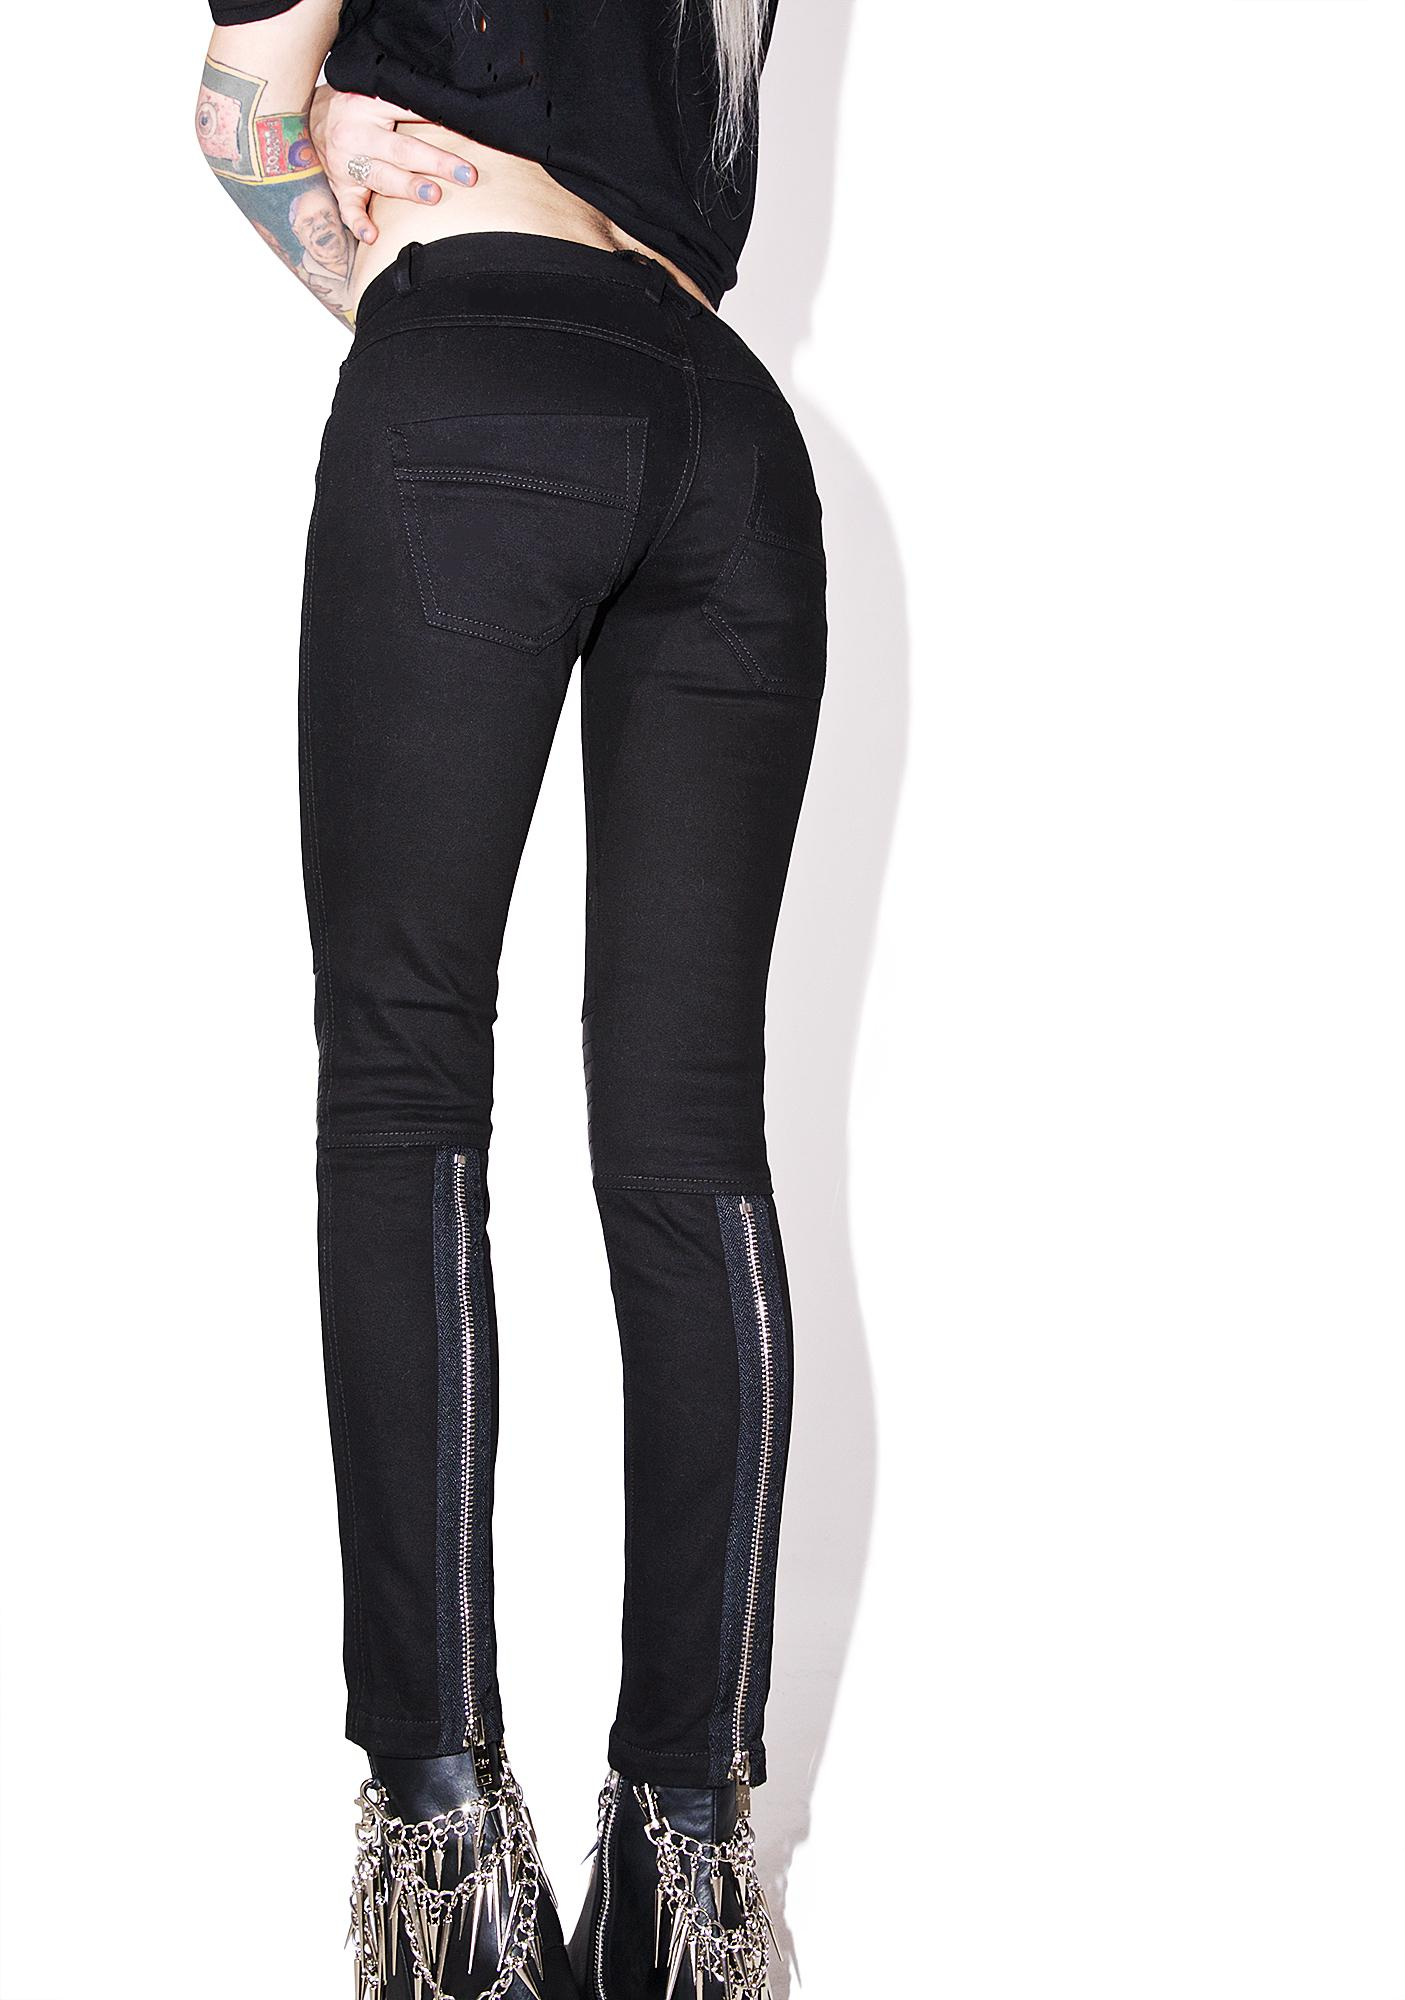 Current Mood Silent Scream Moto Jeans